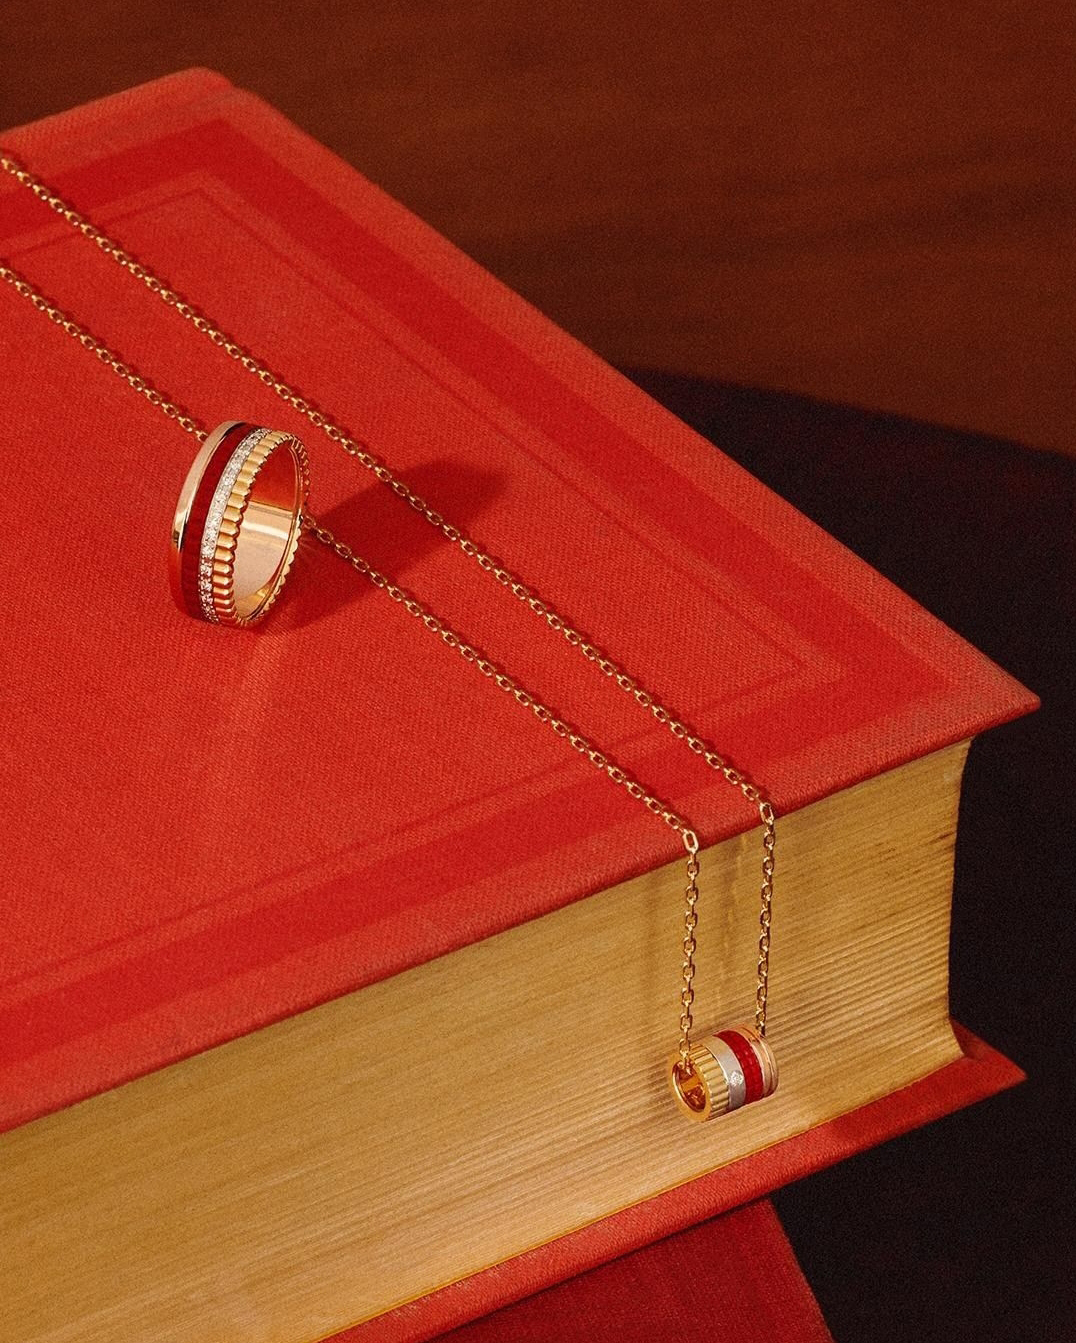 Boucheron-Quatre-Red-Edition-Pendent-Necklace-Ring-Visual.jpg